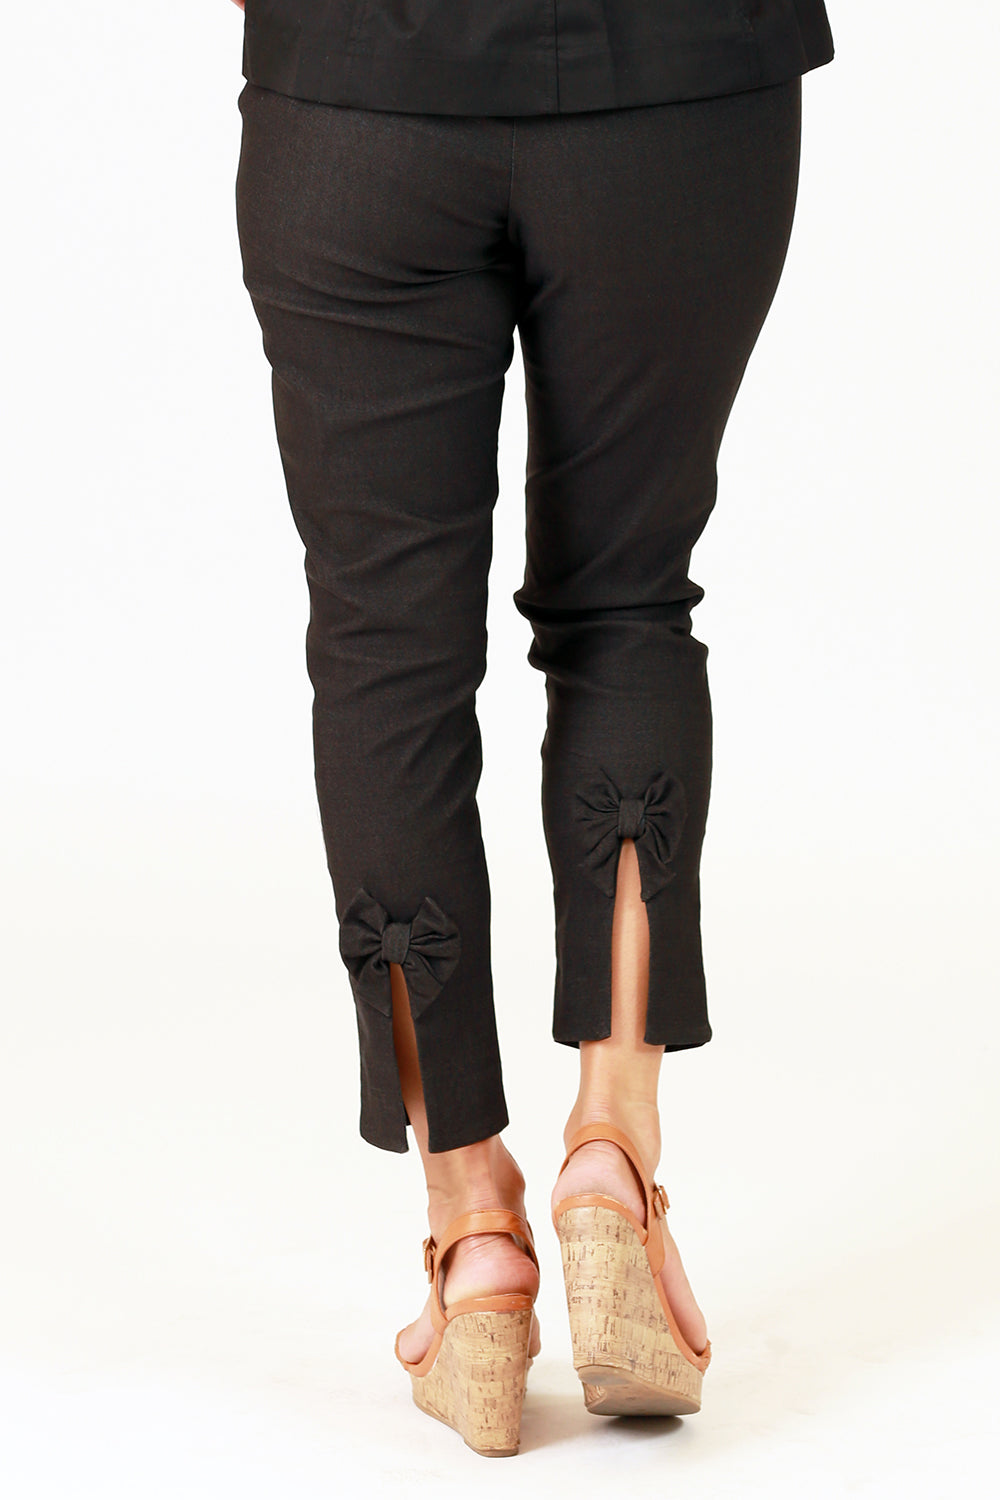 Orbit Alice Pant - Grey